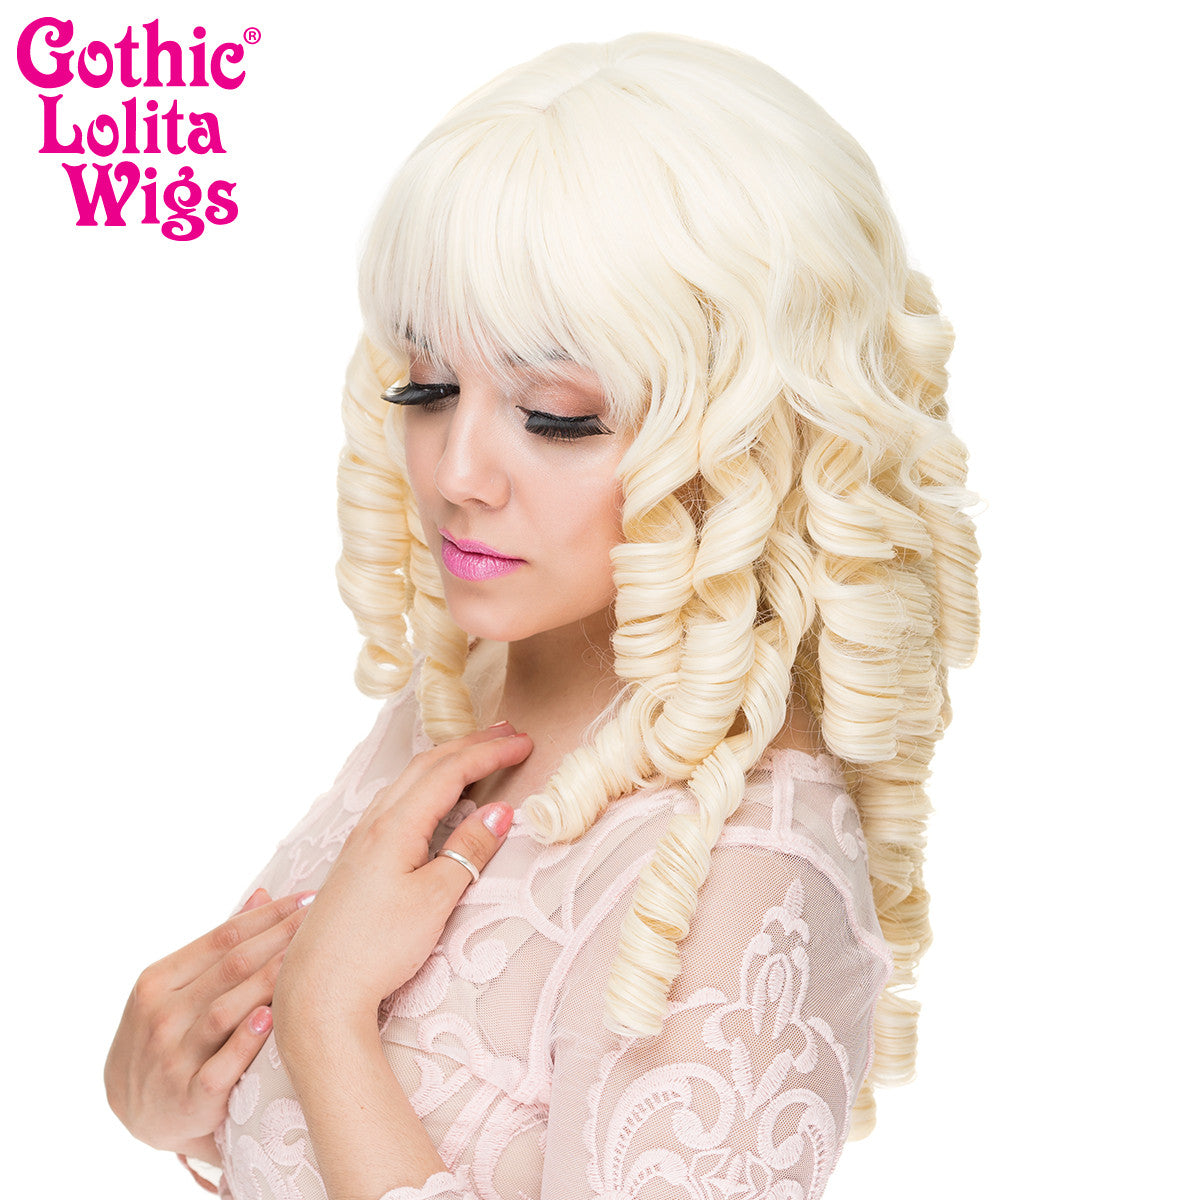 Gothic Lolita Wigs® <br> Ringlet Redux™ Collection - Platinum Blonde -00463